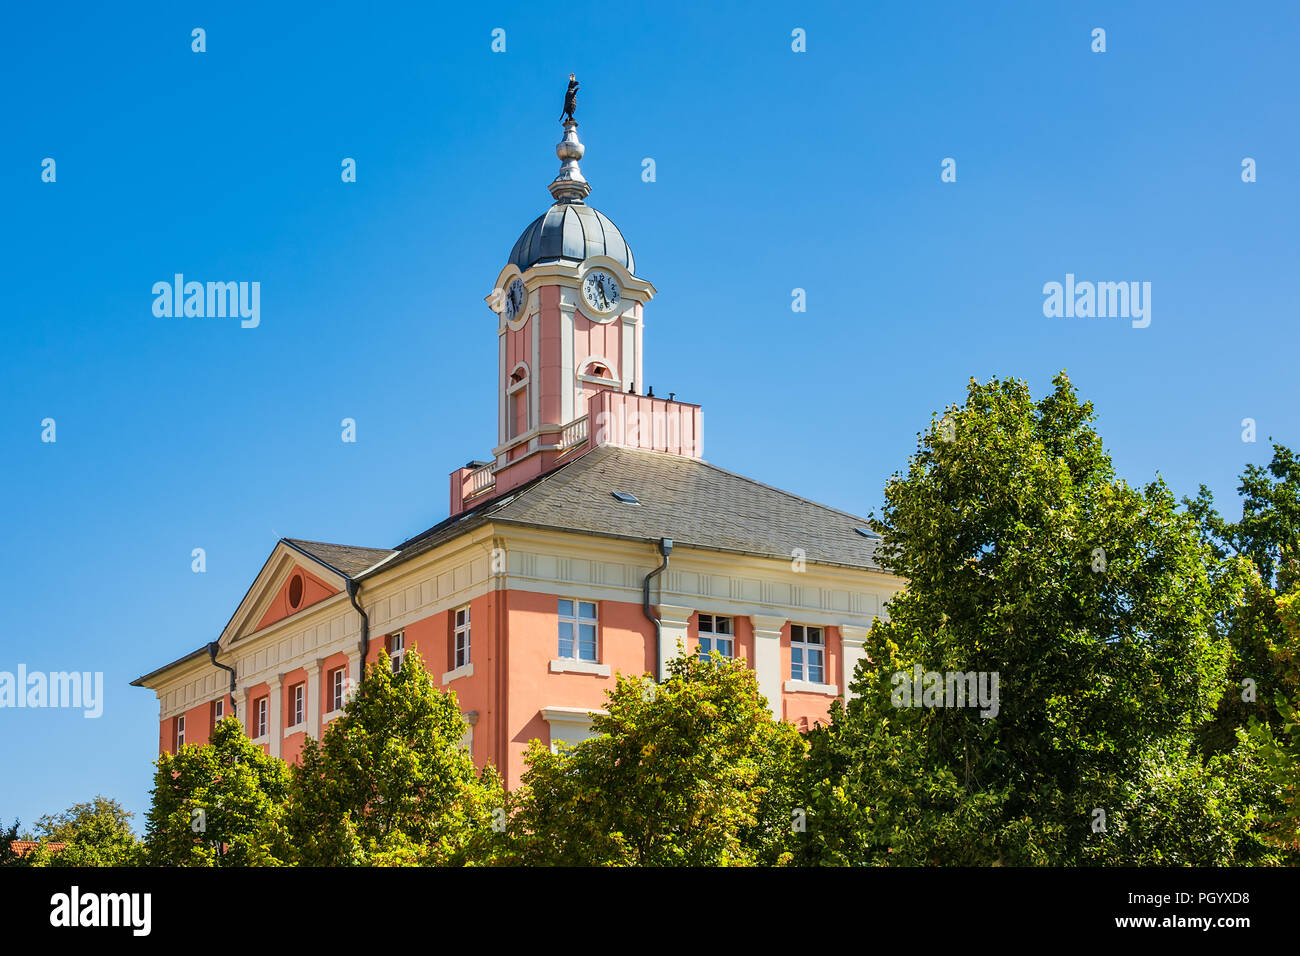 Historical city hall with trees in Templin, Germany. - Stock Image